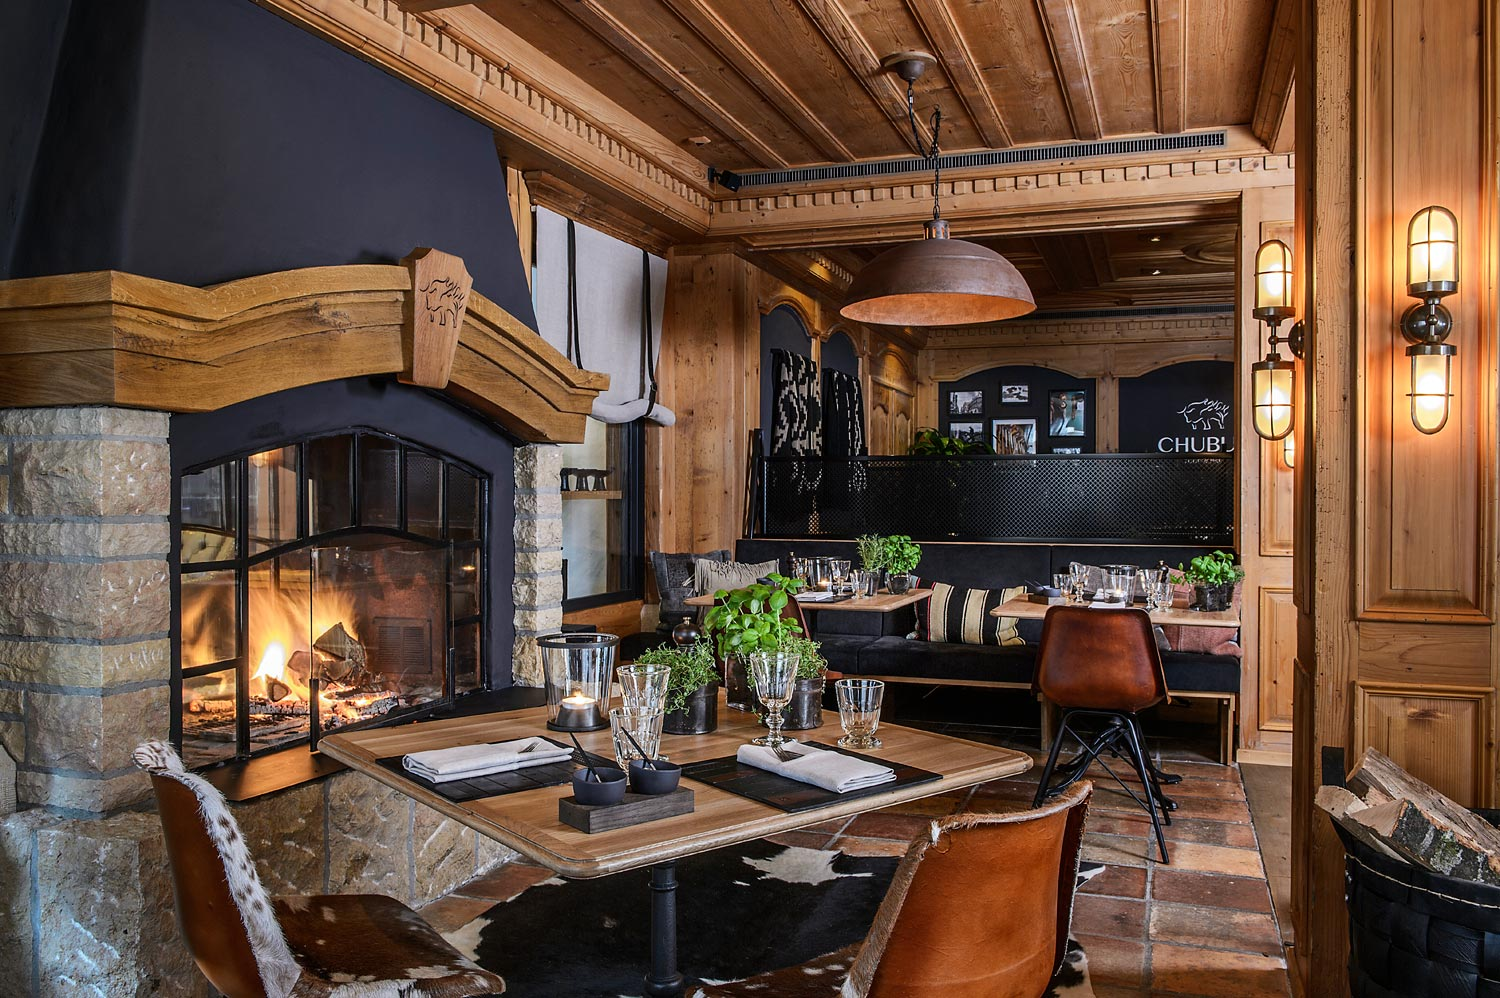 We Review Park Gstaad Hotel - 'The Last Paradise in a Crazy World' 12